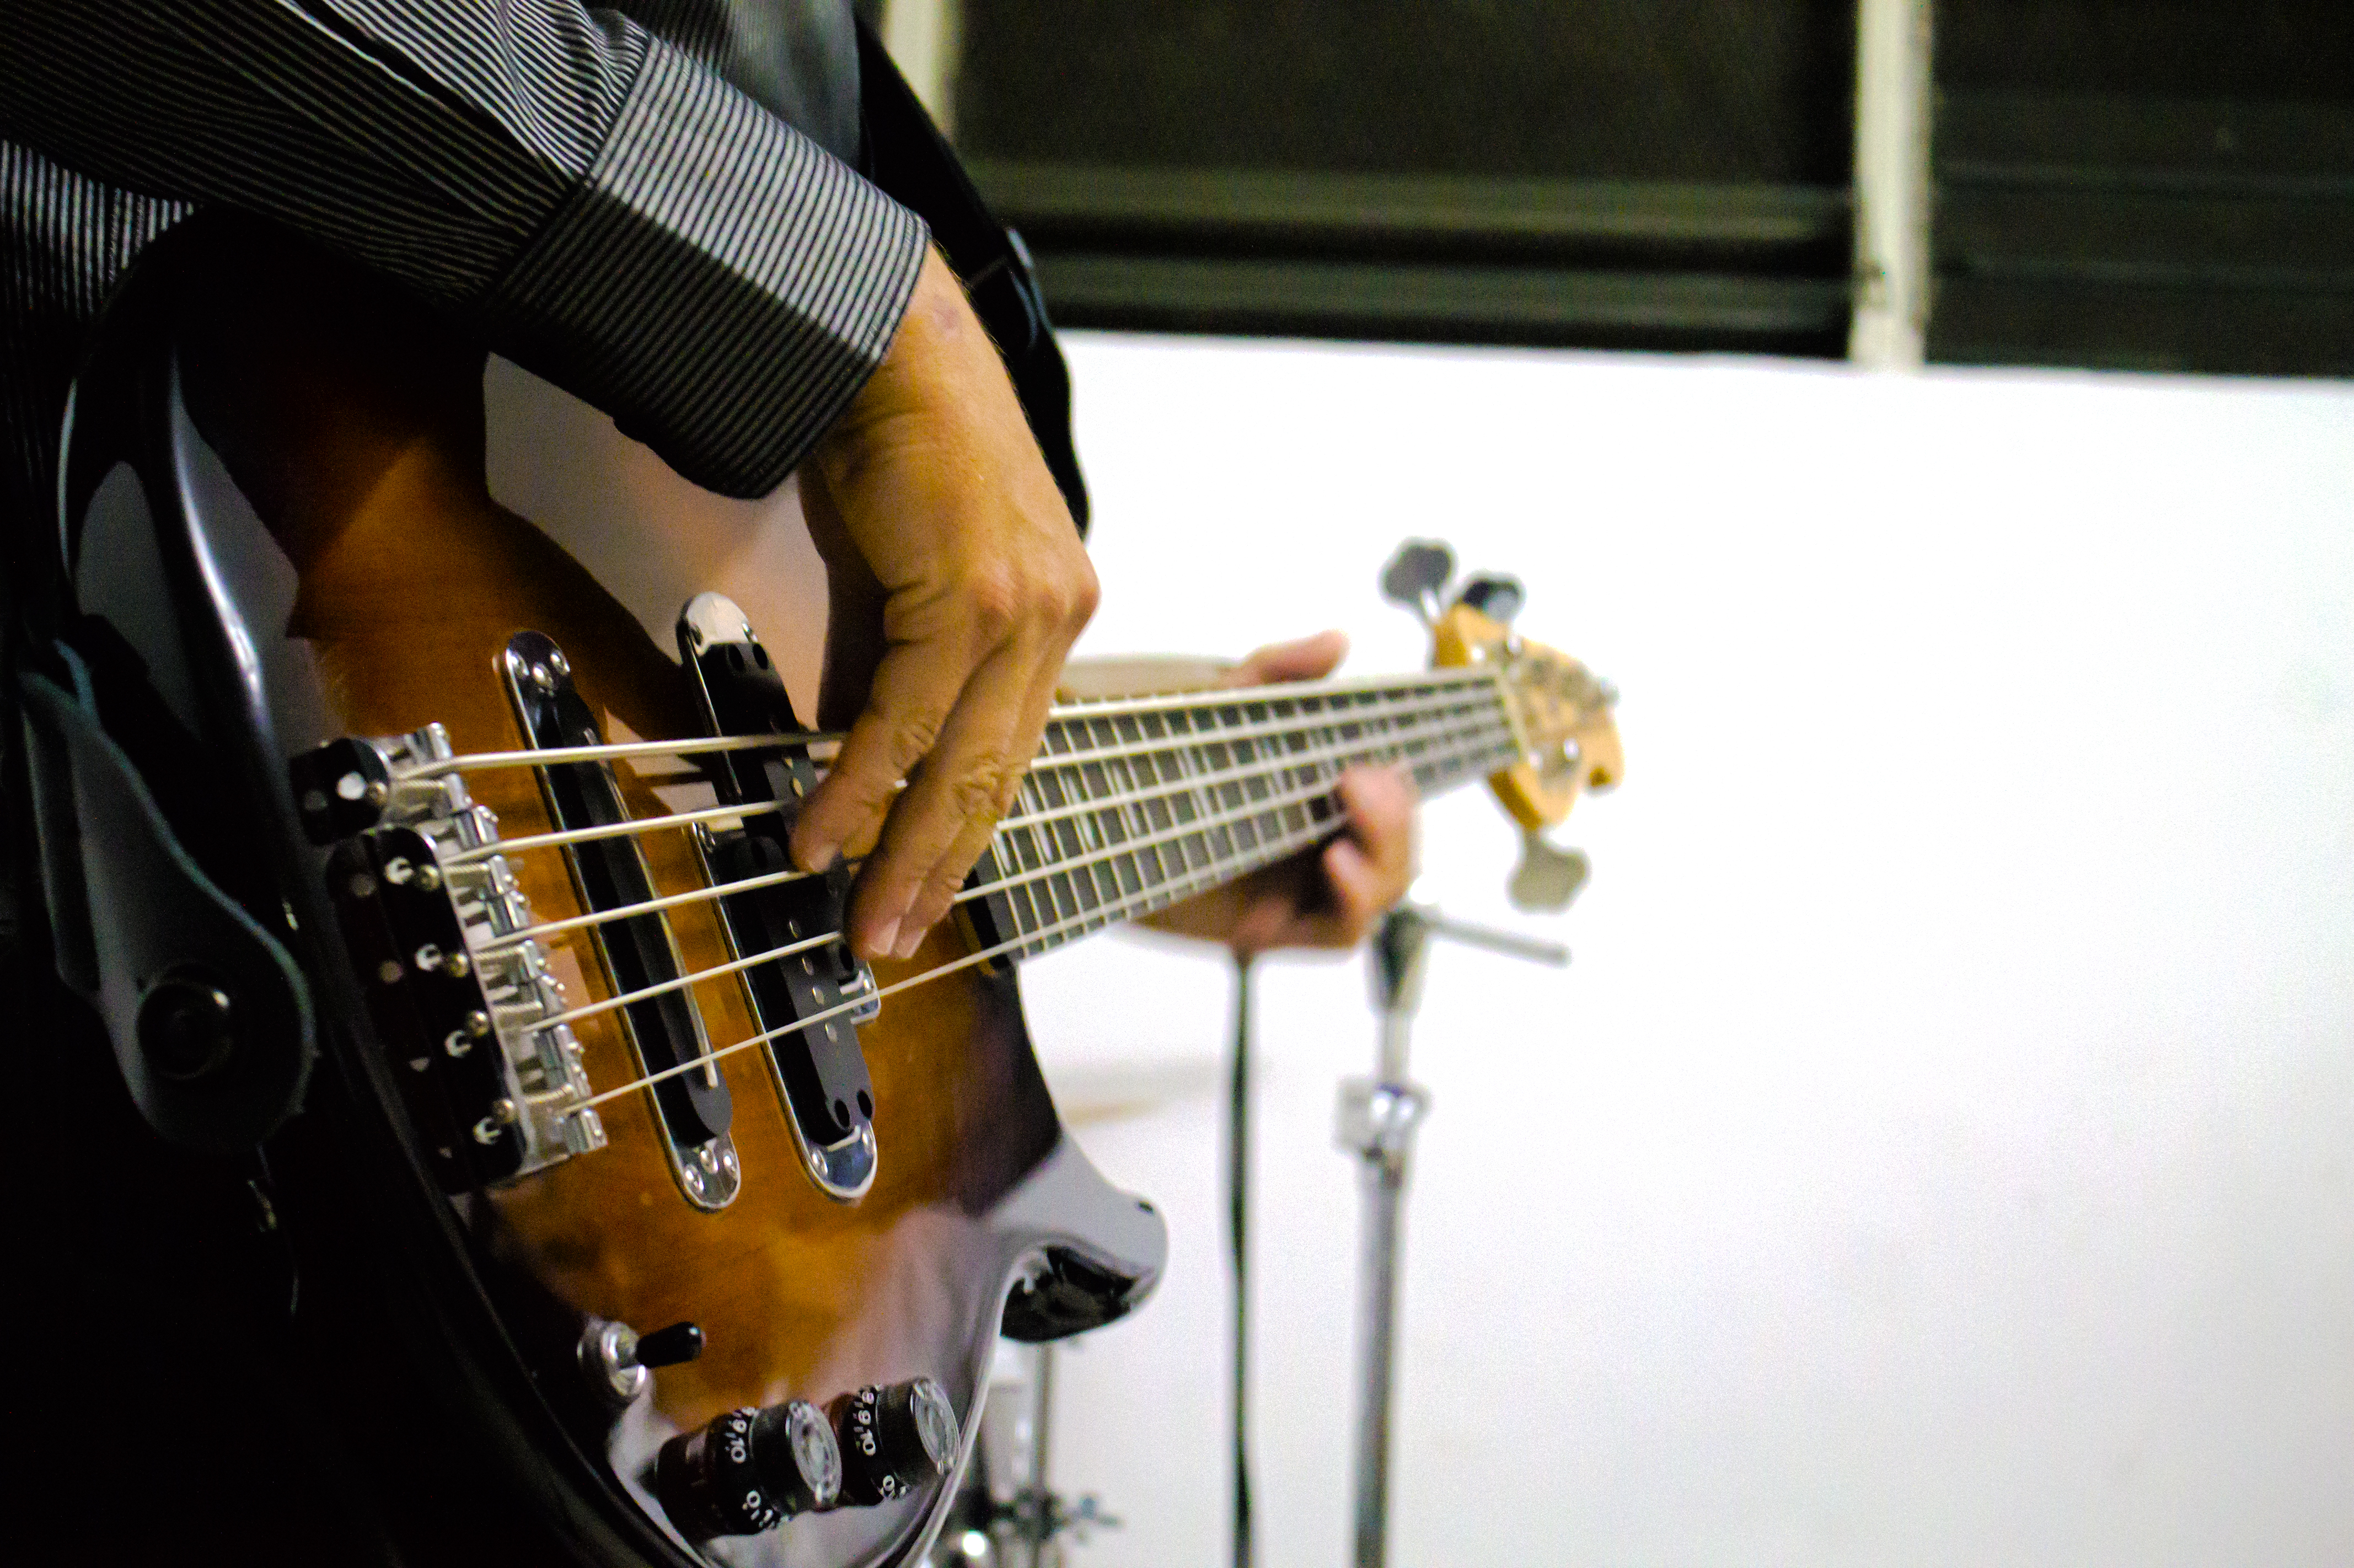 Bass, Band, Close-up, Electric, Hands, HQ Photo